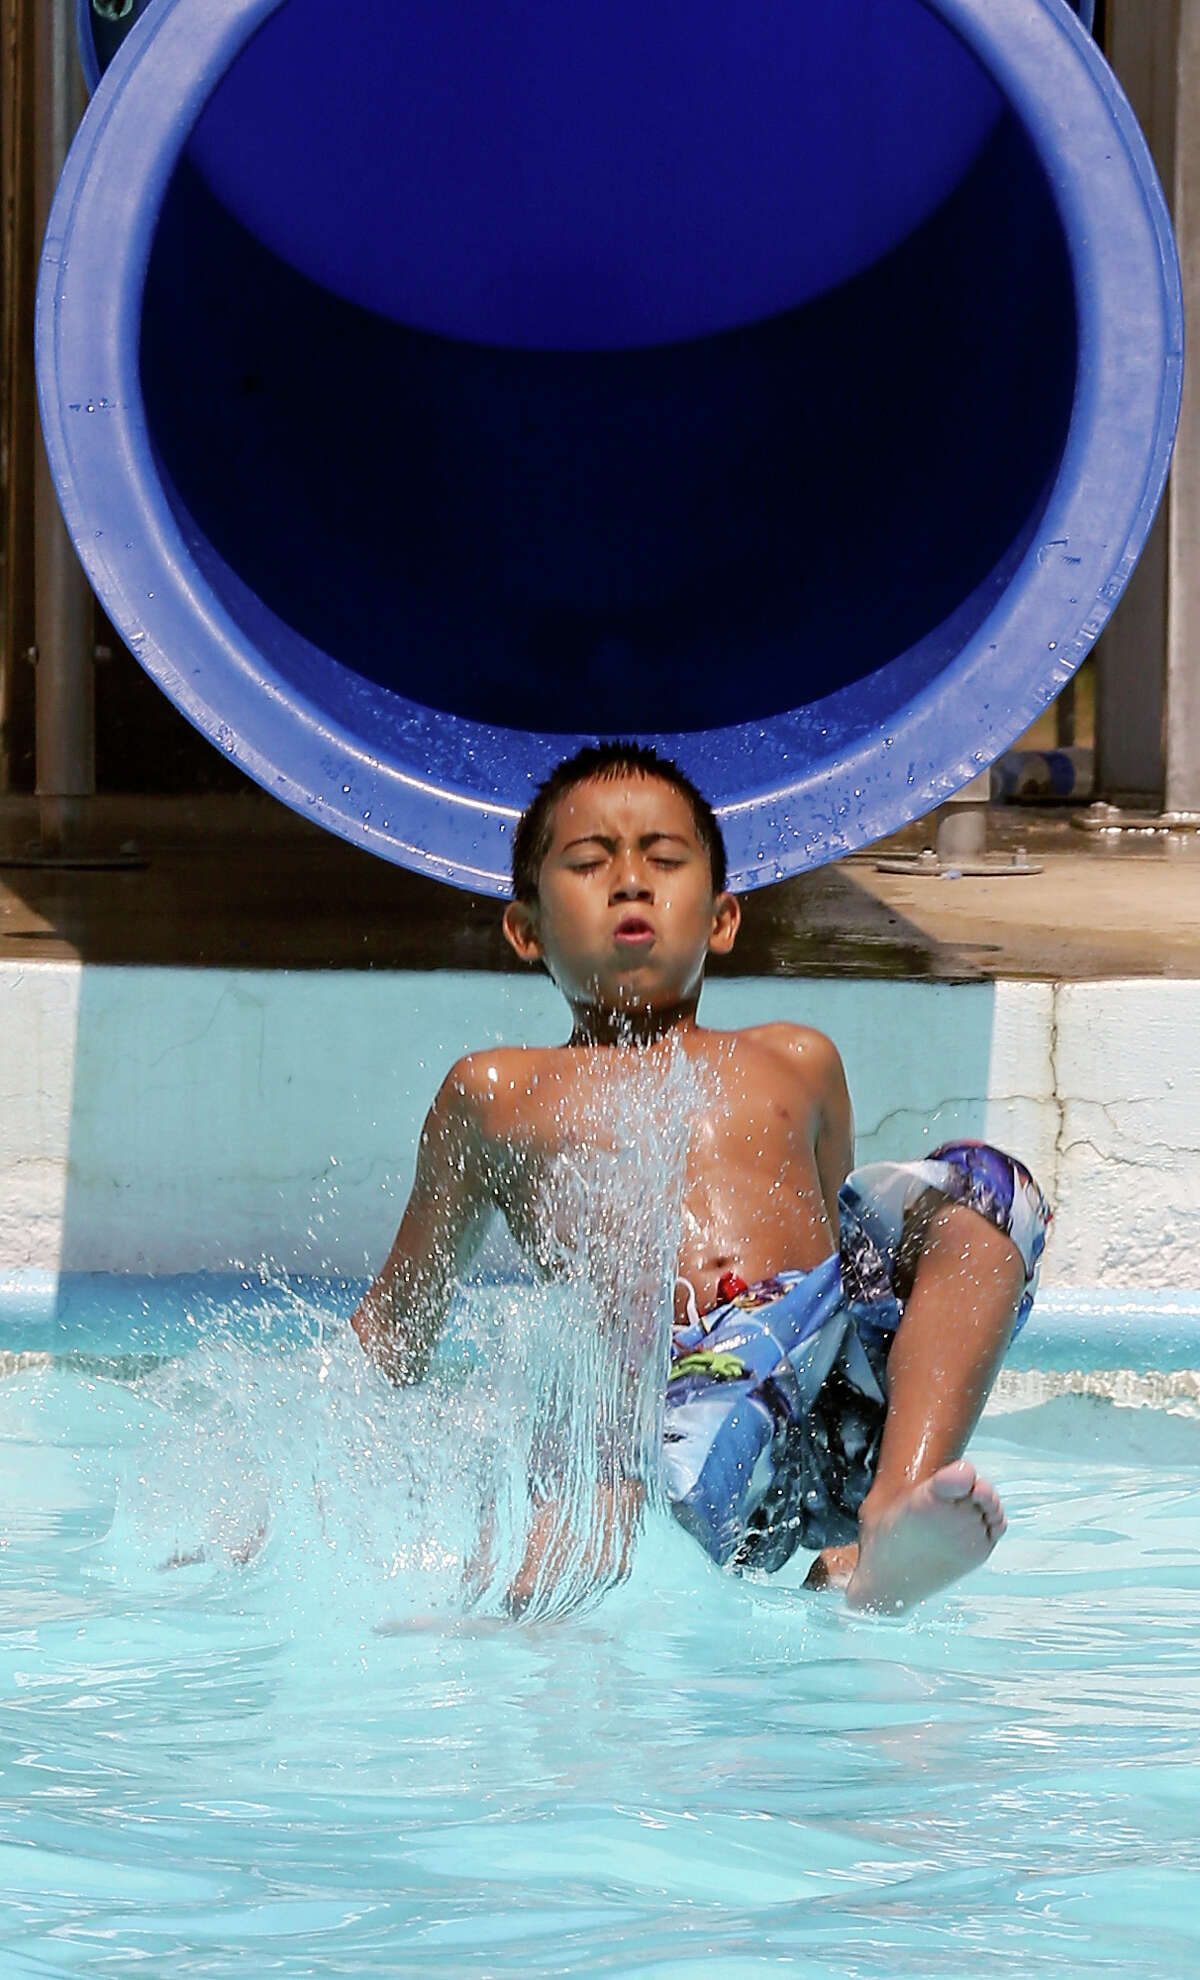 Michael Lopez, 8, cools off at Roosevelt Pool Thursday Aug. 1, 2013.